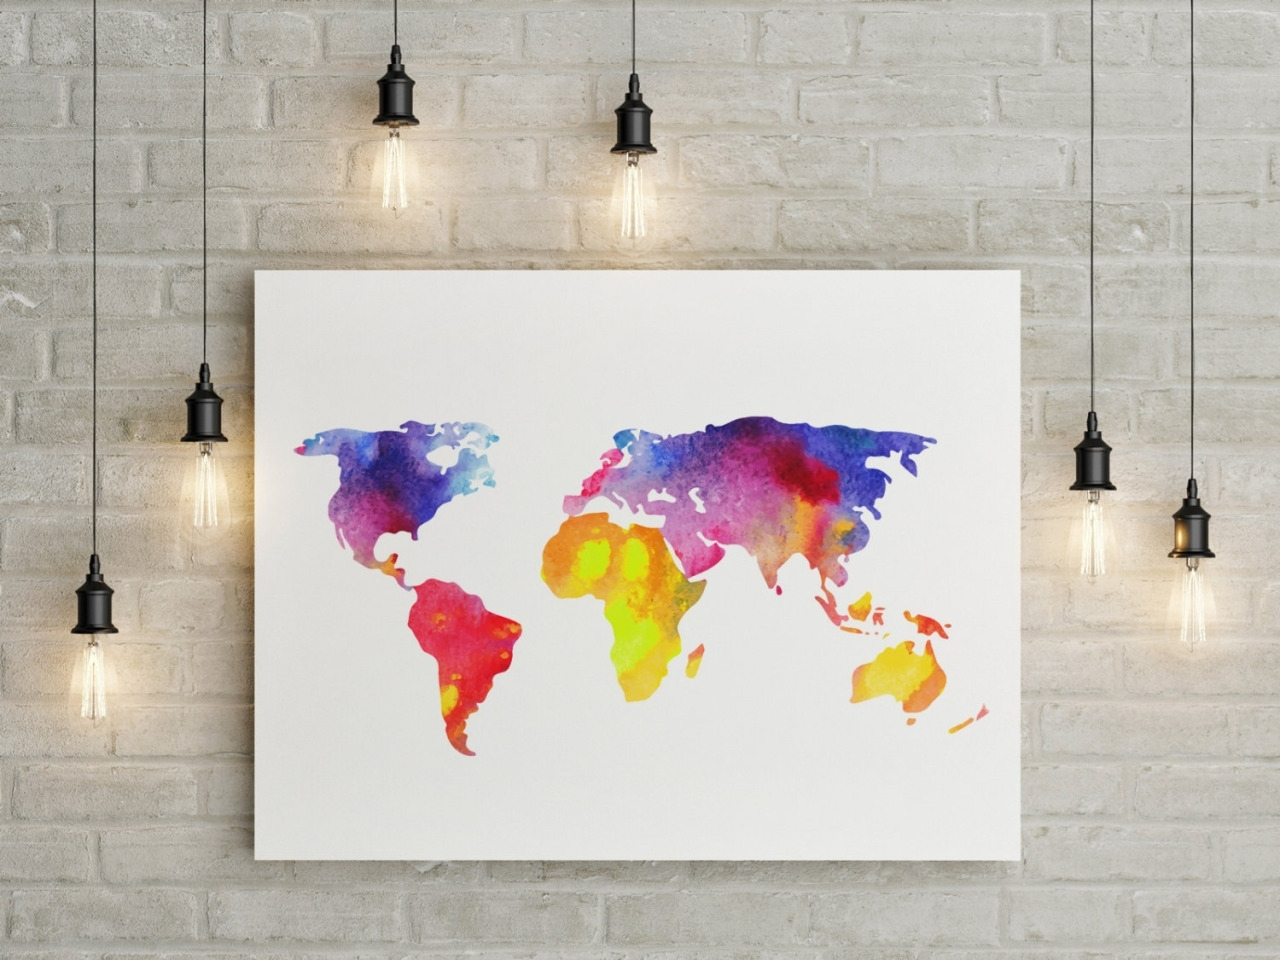 Wondrous How To Create A World Map Wall Art To Gray World Map World Pertaining To World Map Wall Art Canvas (View 13 of 20)